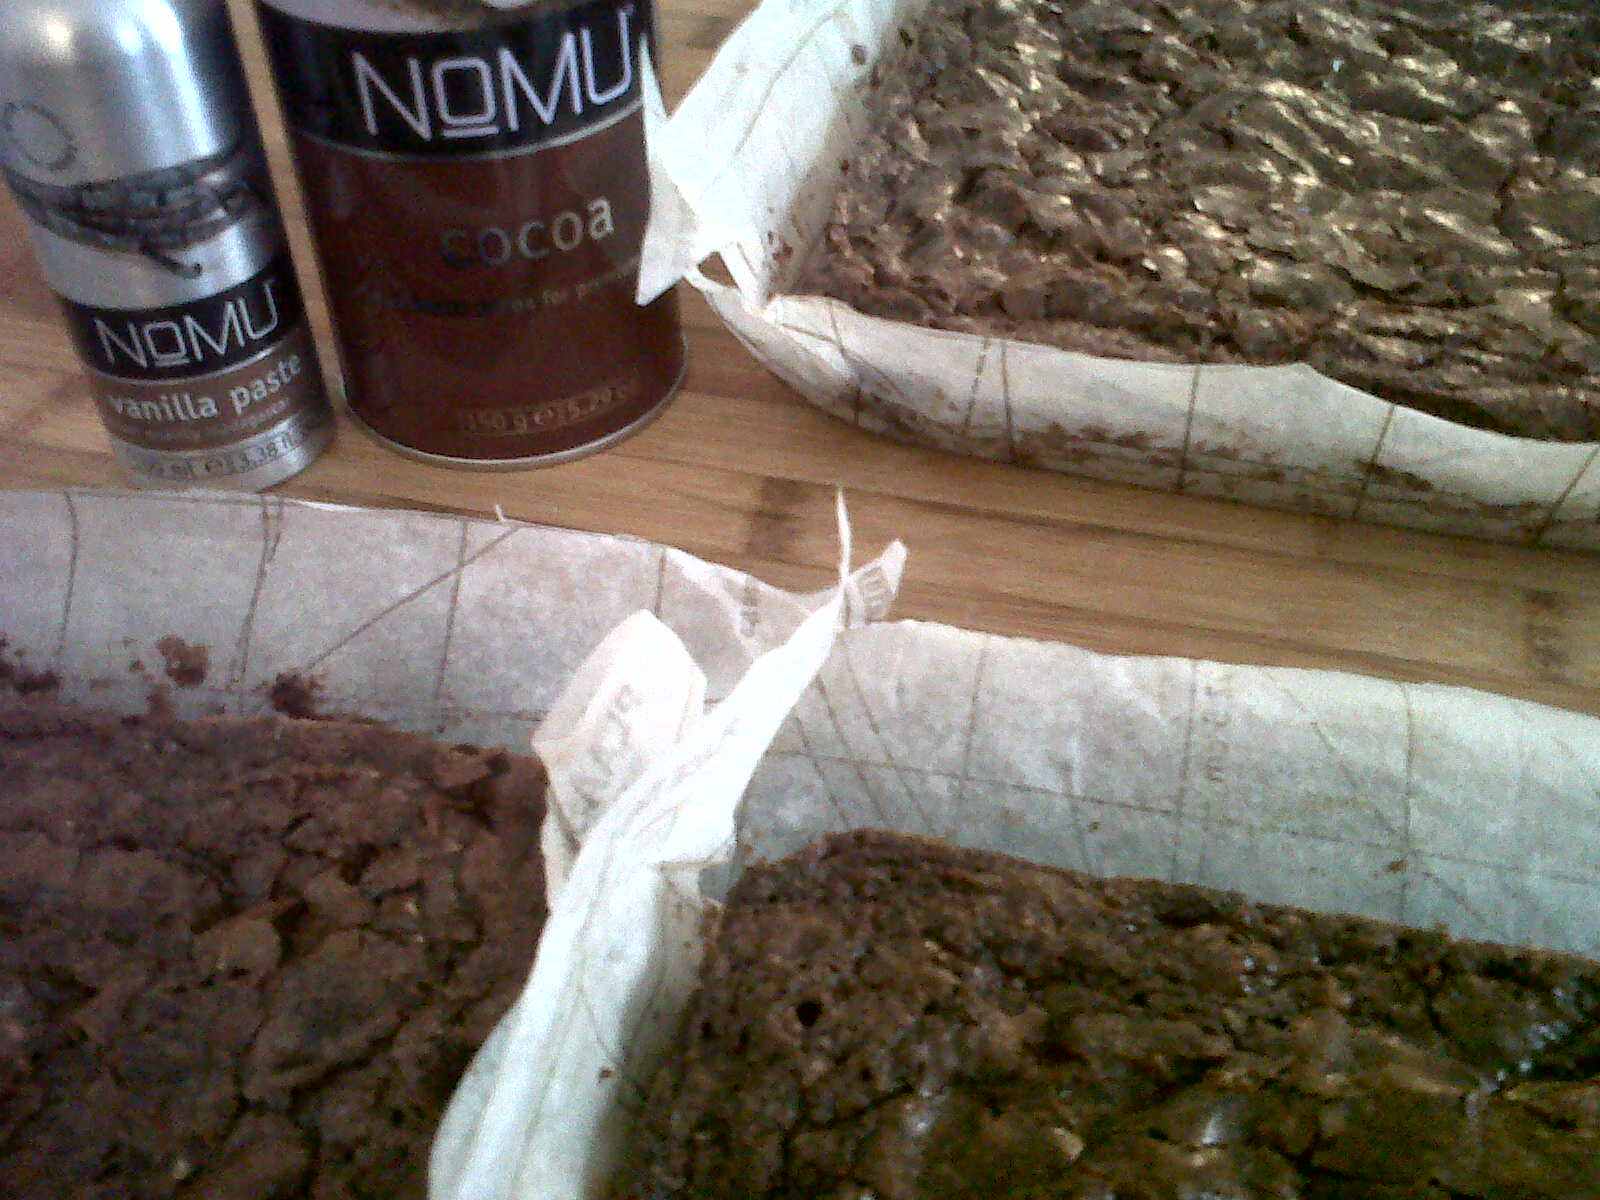 My kitchen is shining bright with NoMU products